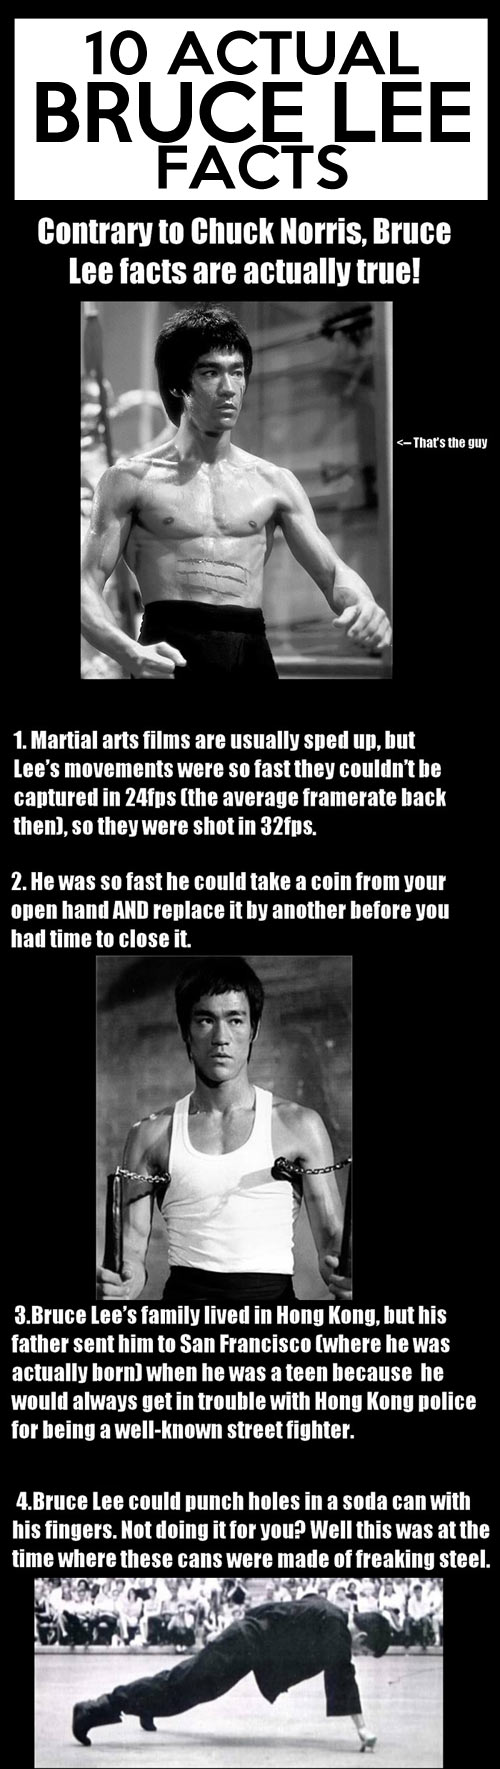 Actual Bruce Lee Facts...